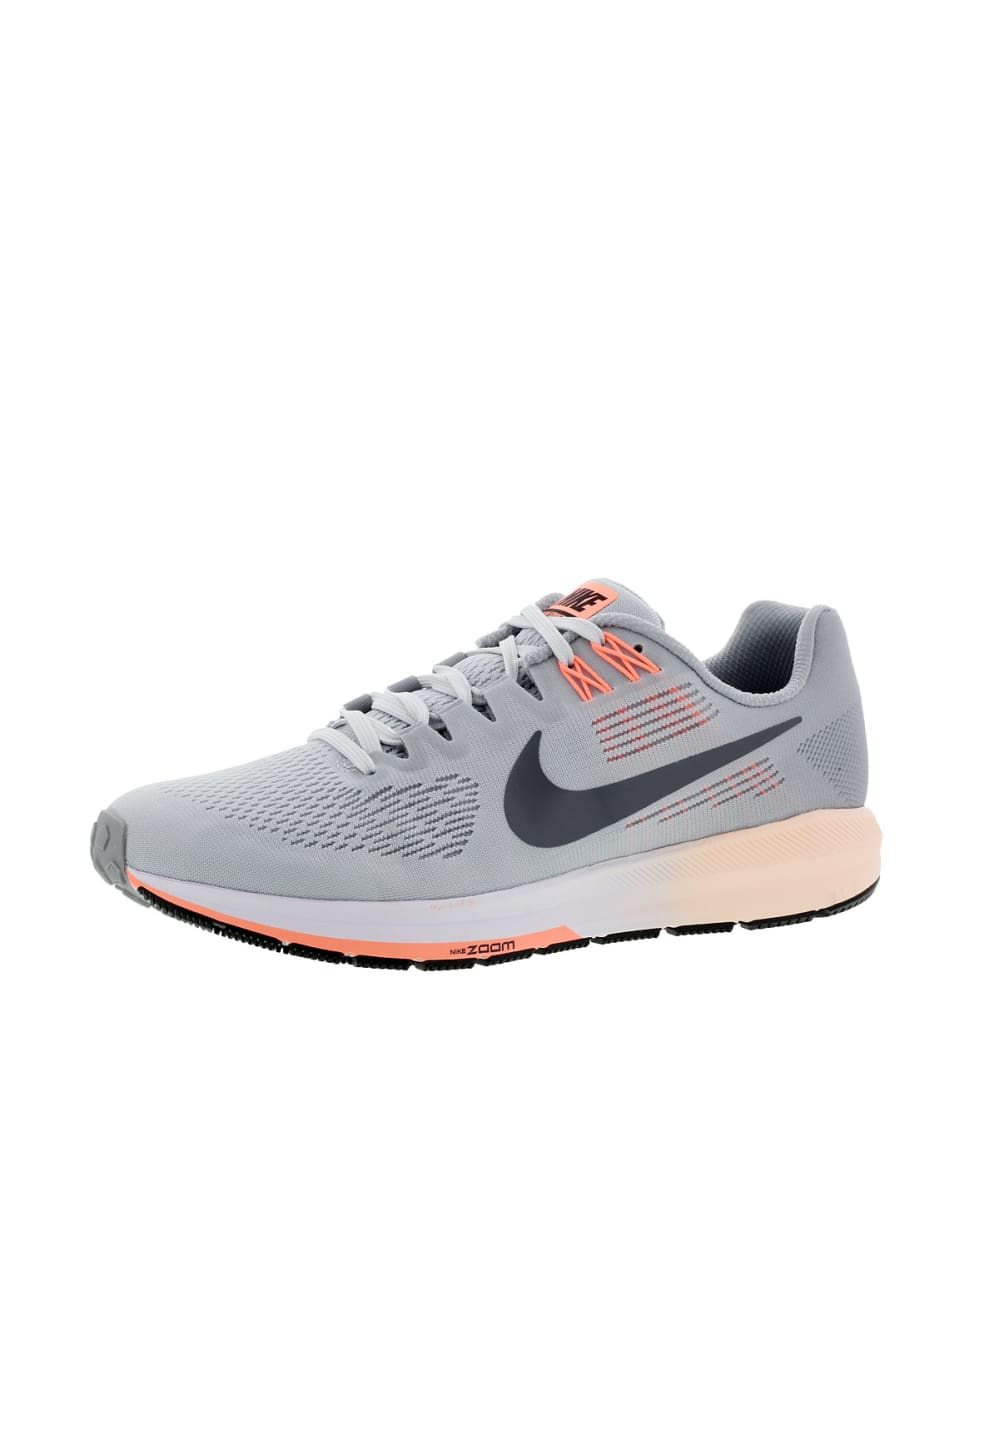 Chaussures Nike Femme Zoom Pour Running Air 21 Structure Gris DIWH9eE2Y